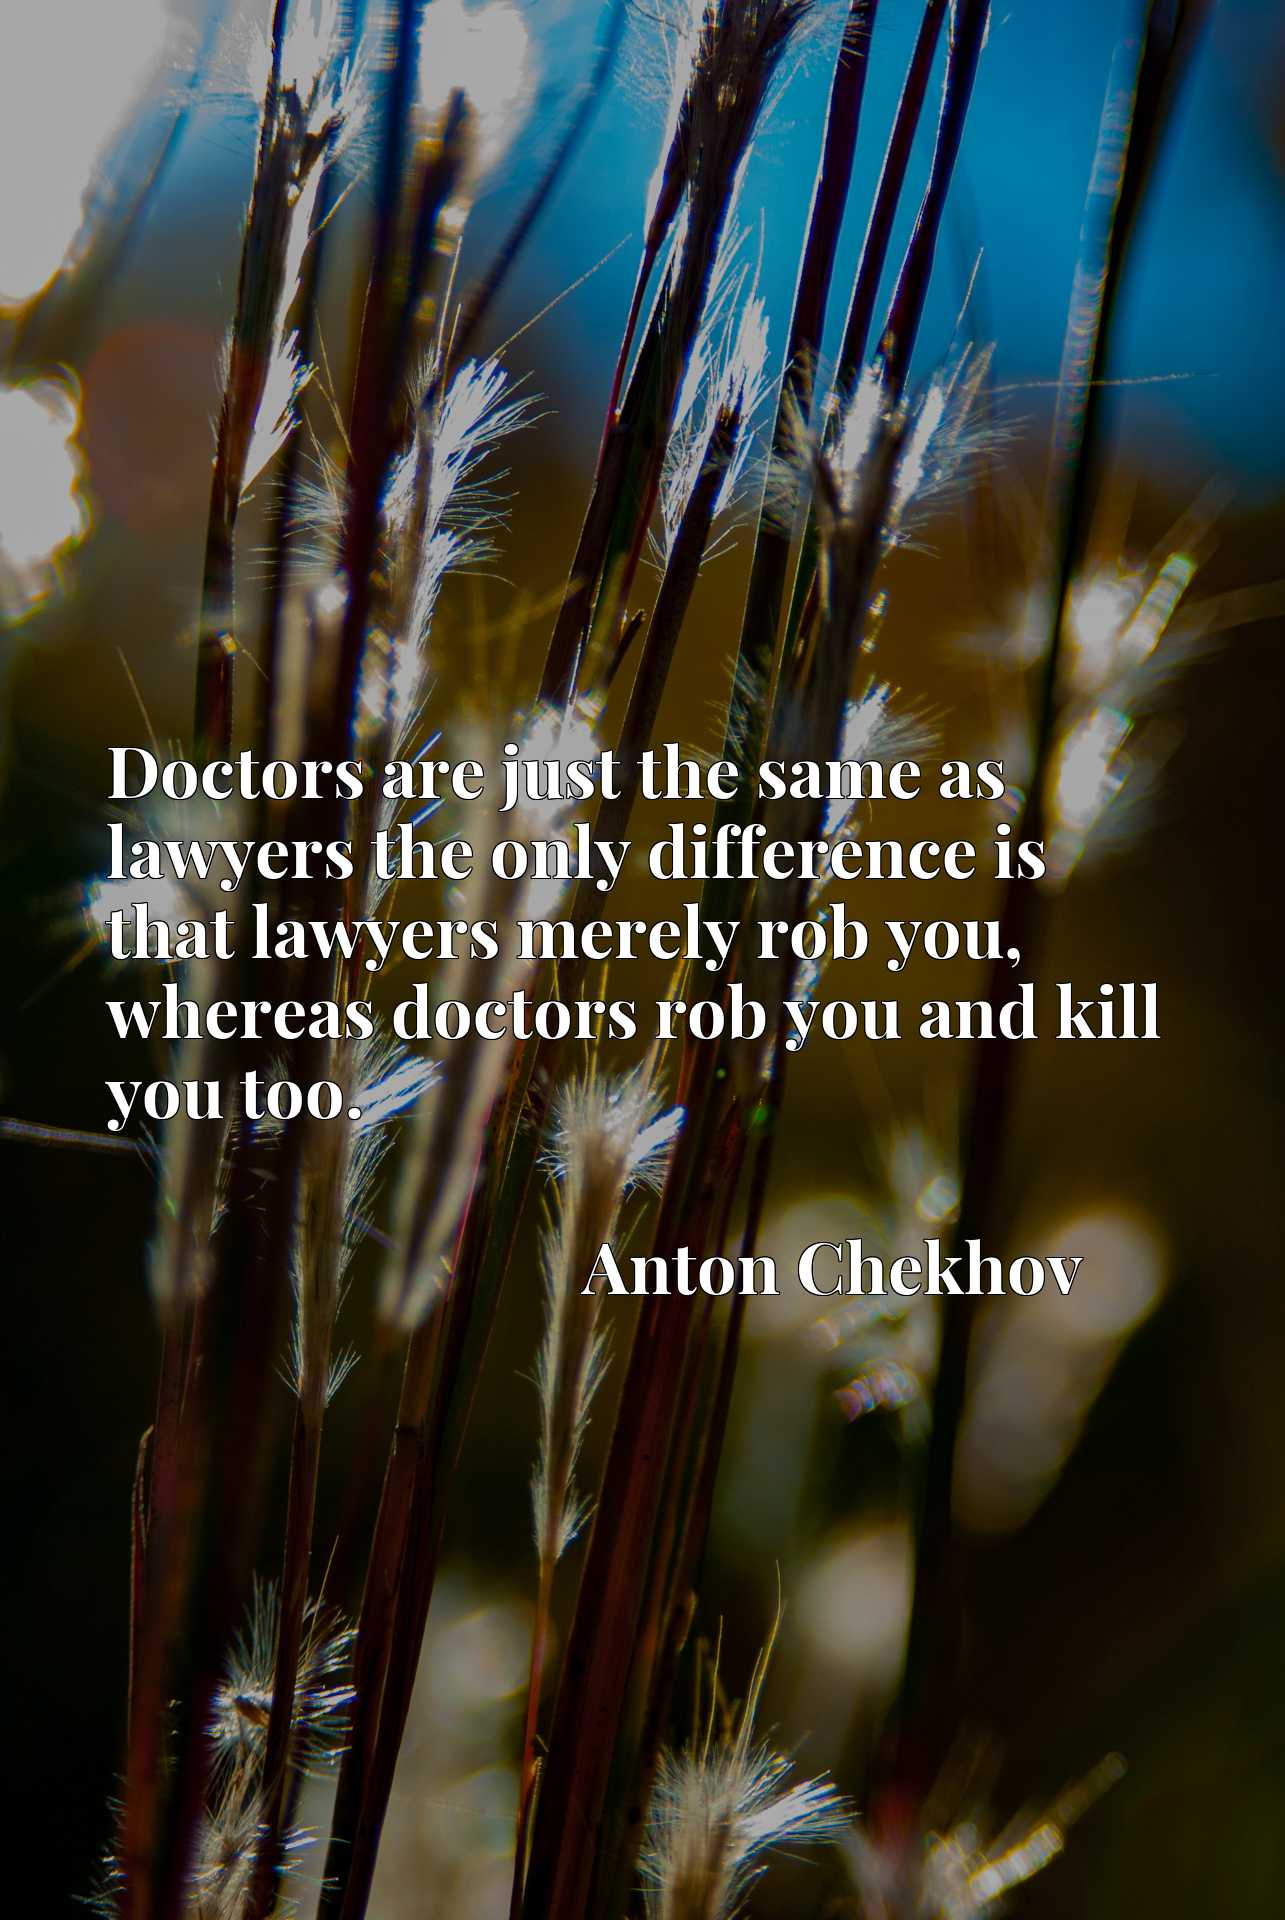 Doctors are just the same as lawyers the only difference is that lawyers merely rob you, whereas doctors rob you and kill you too.